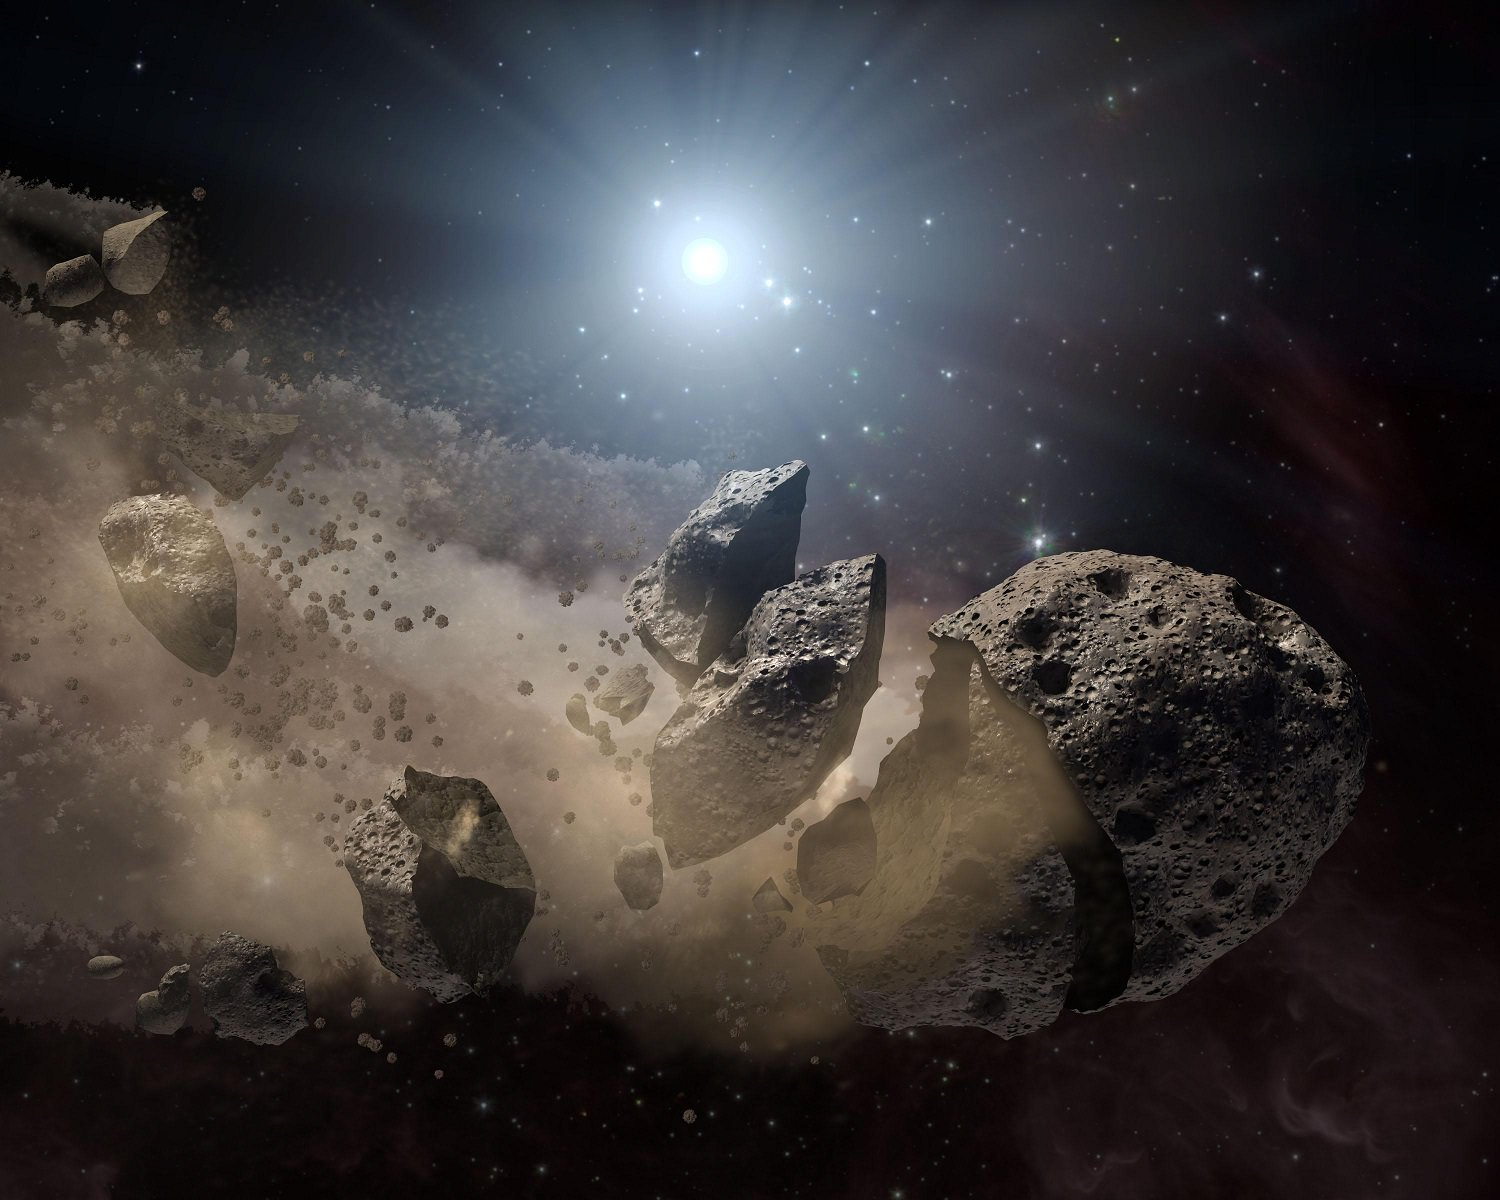 Artist's impression of an asteroid breaking up. Credit: NASA/JPL-Caltech